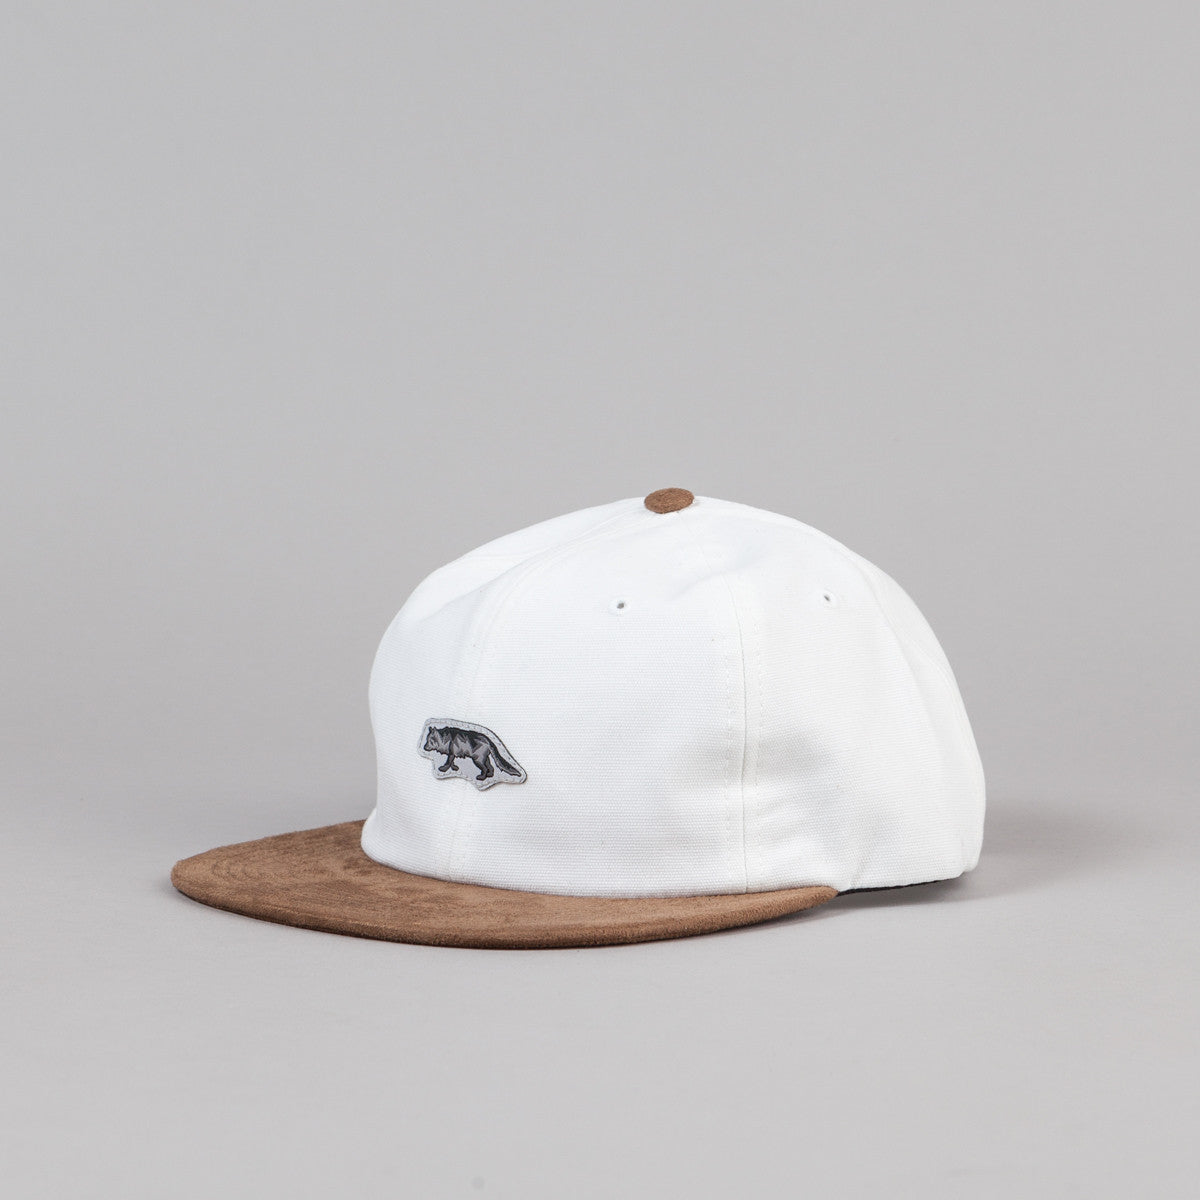 Raised By Wolves Geowulf Polo Cap